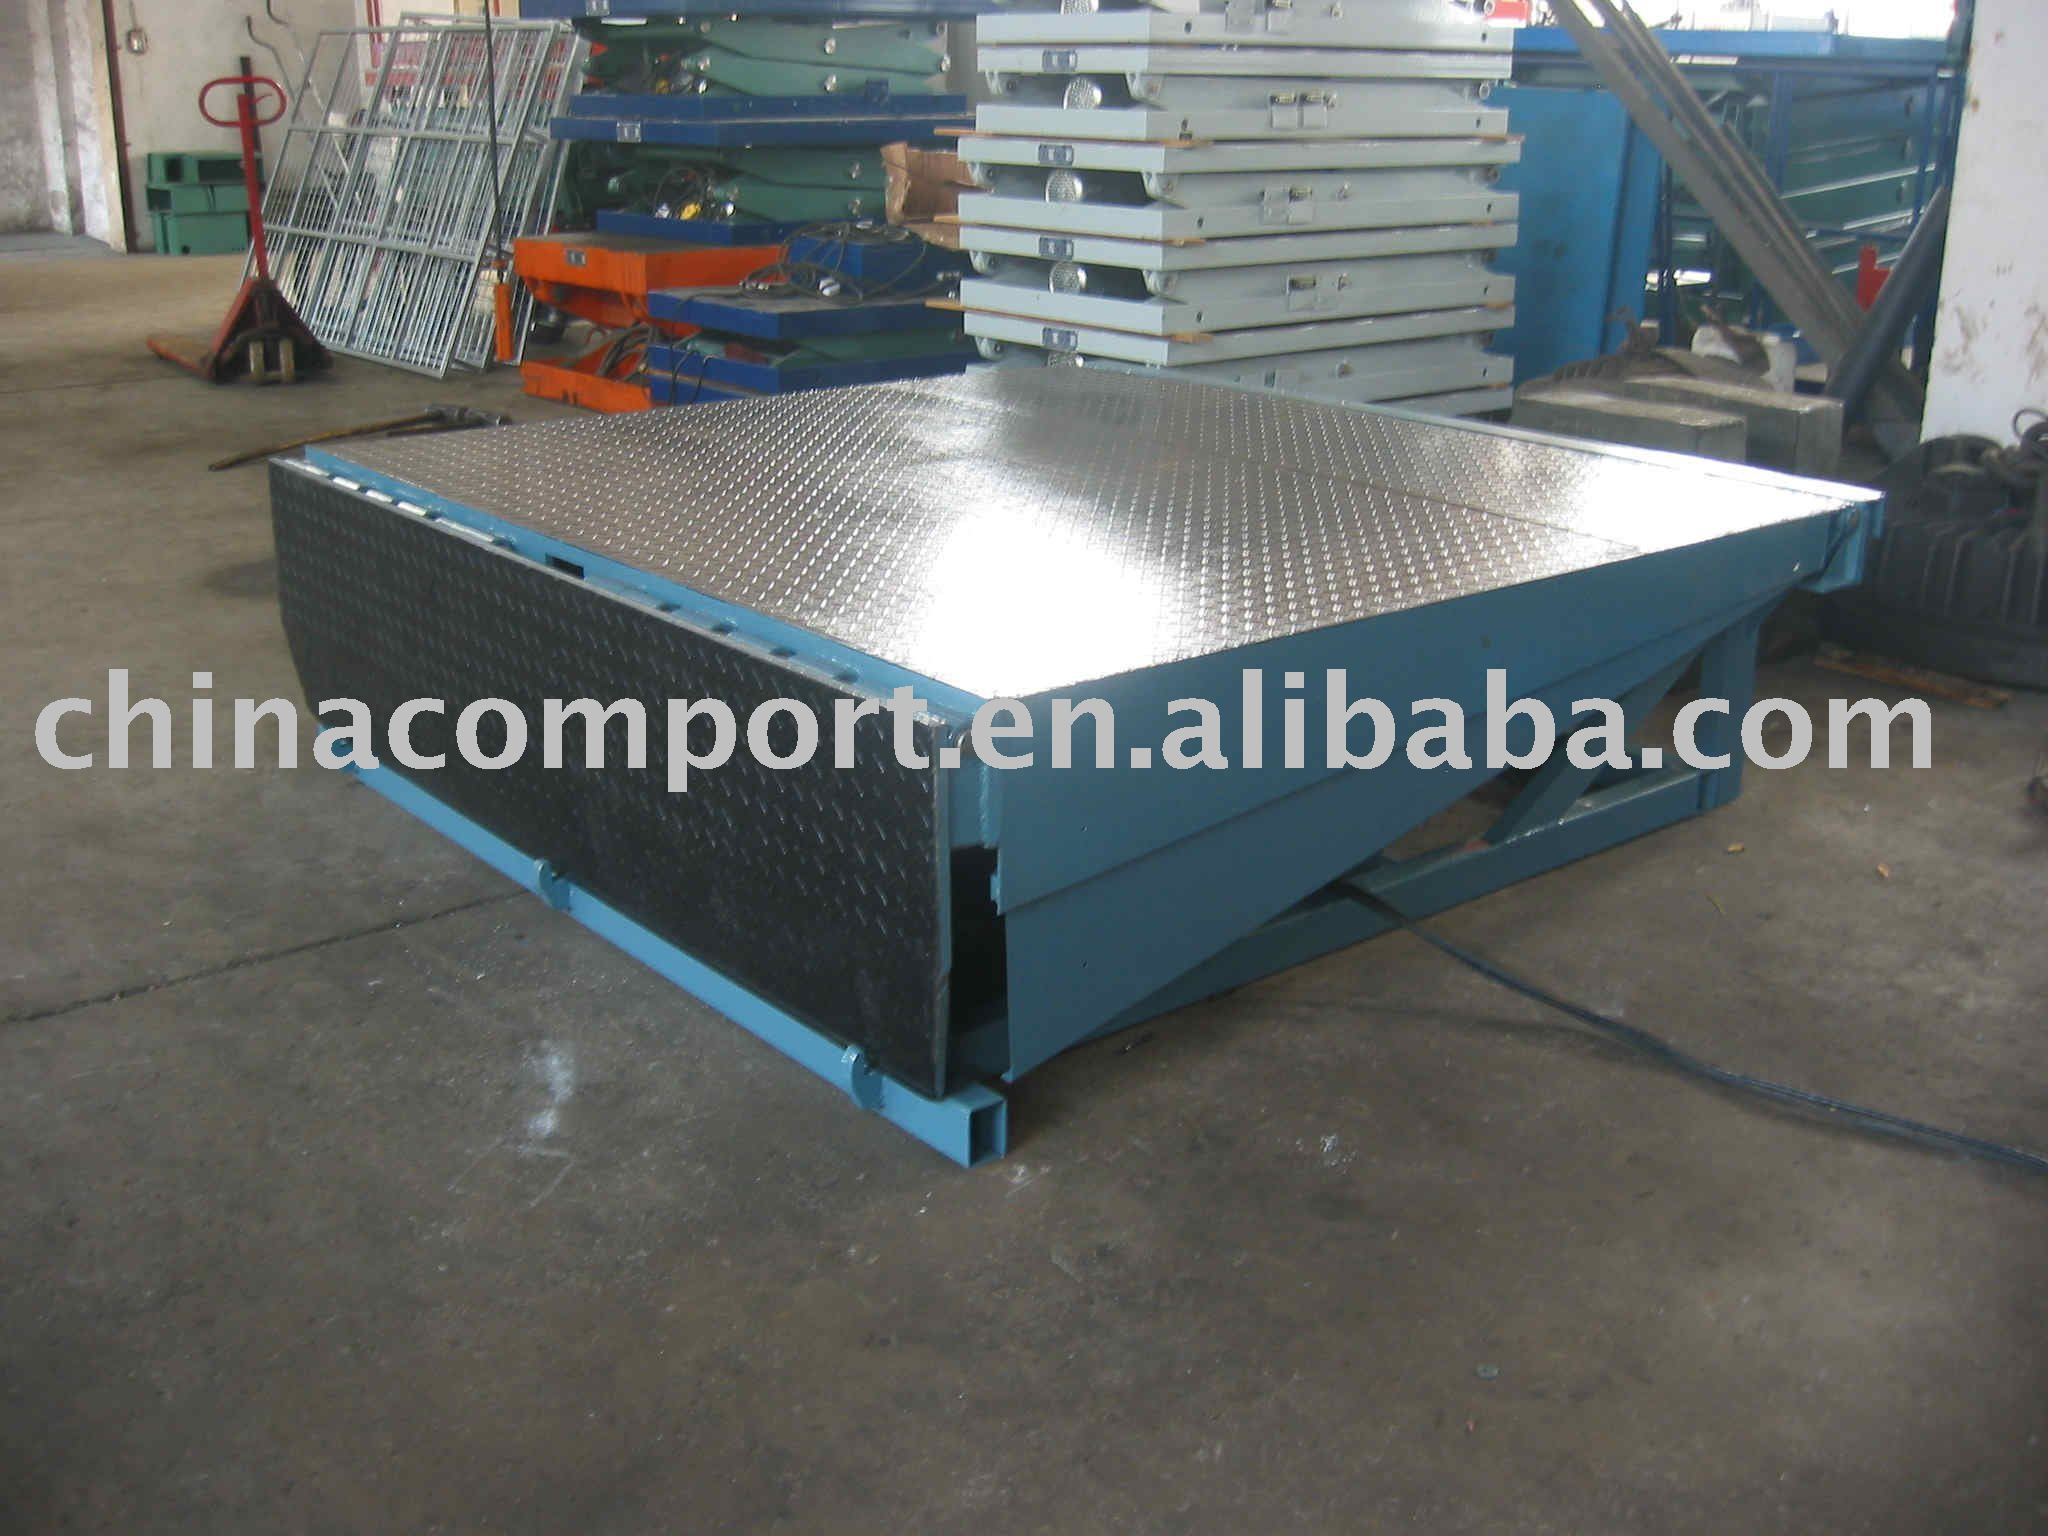 stationary hydraulic dock levelers